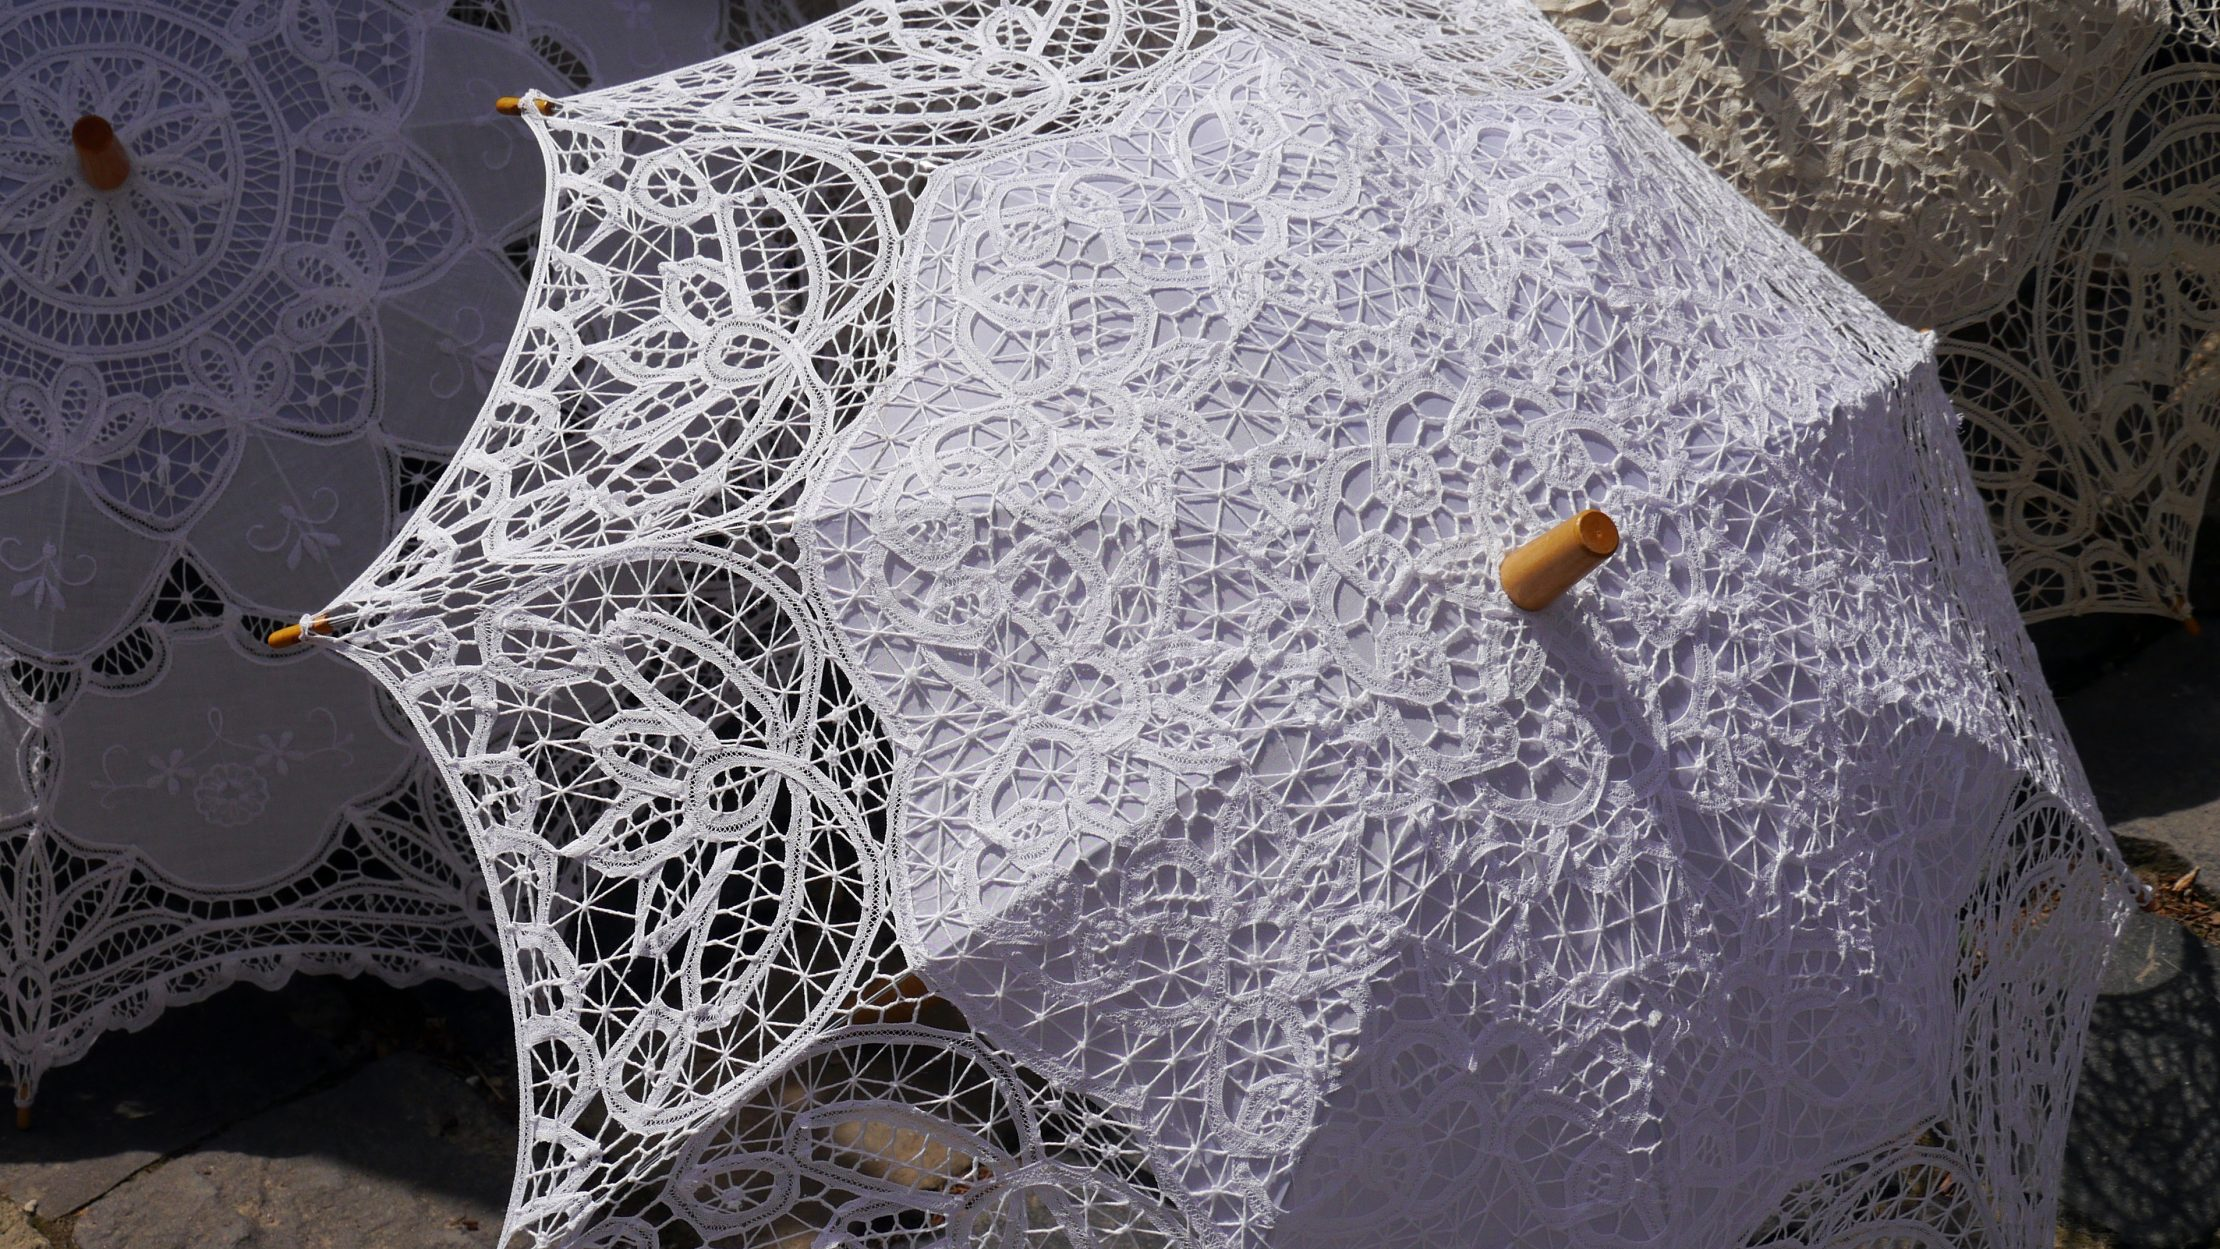 Burano lace from Venice